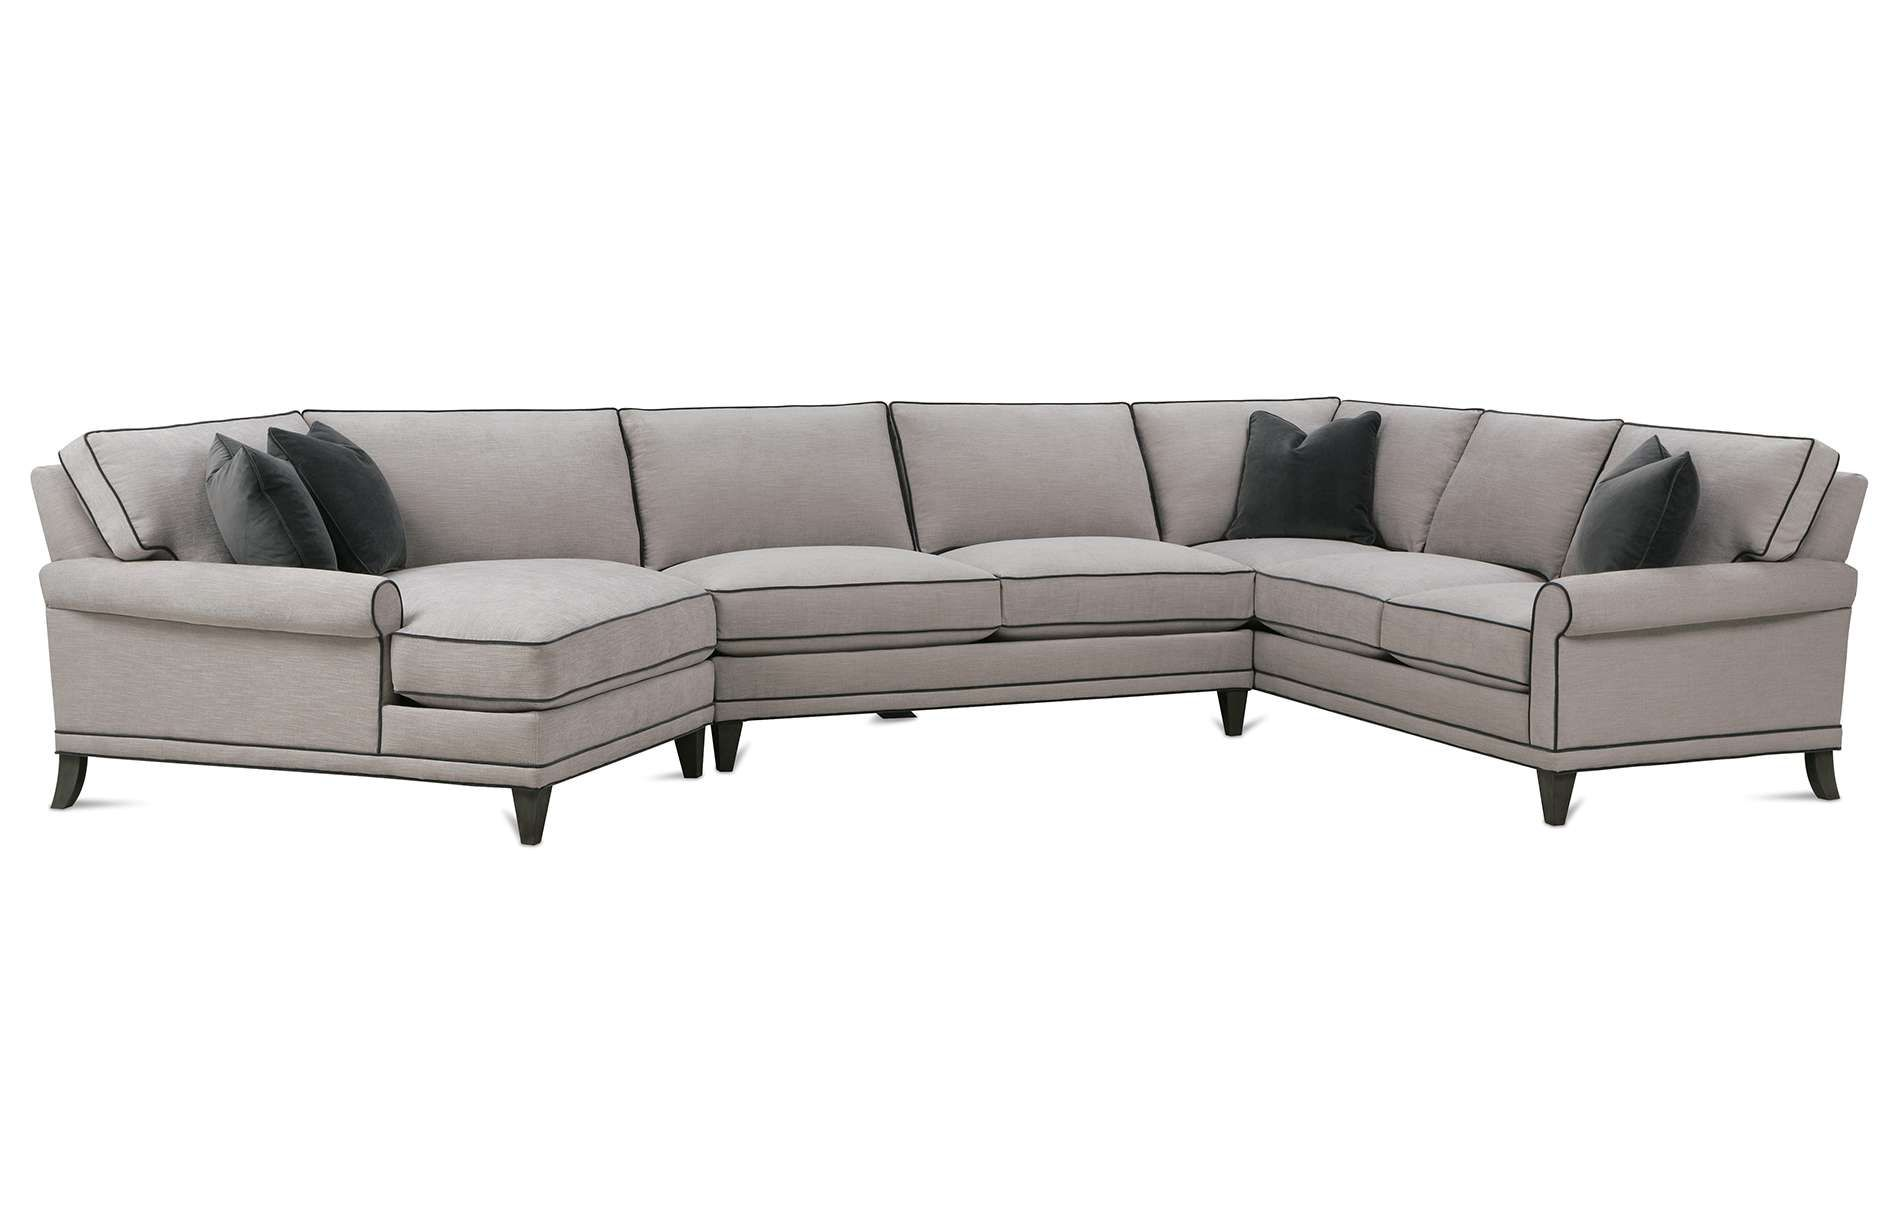 Captivating My Style II Sectional   Rowe Furniture, Rowe Furniture, Available At Holman  House Furniture